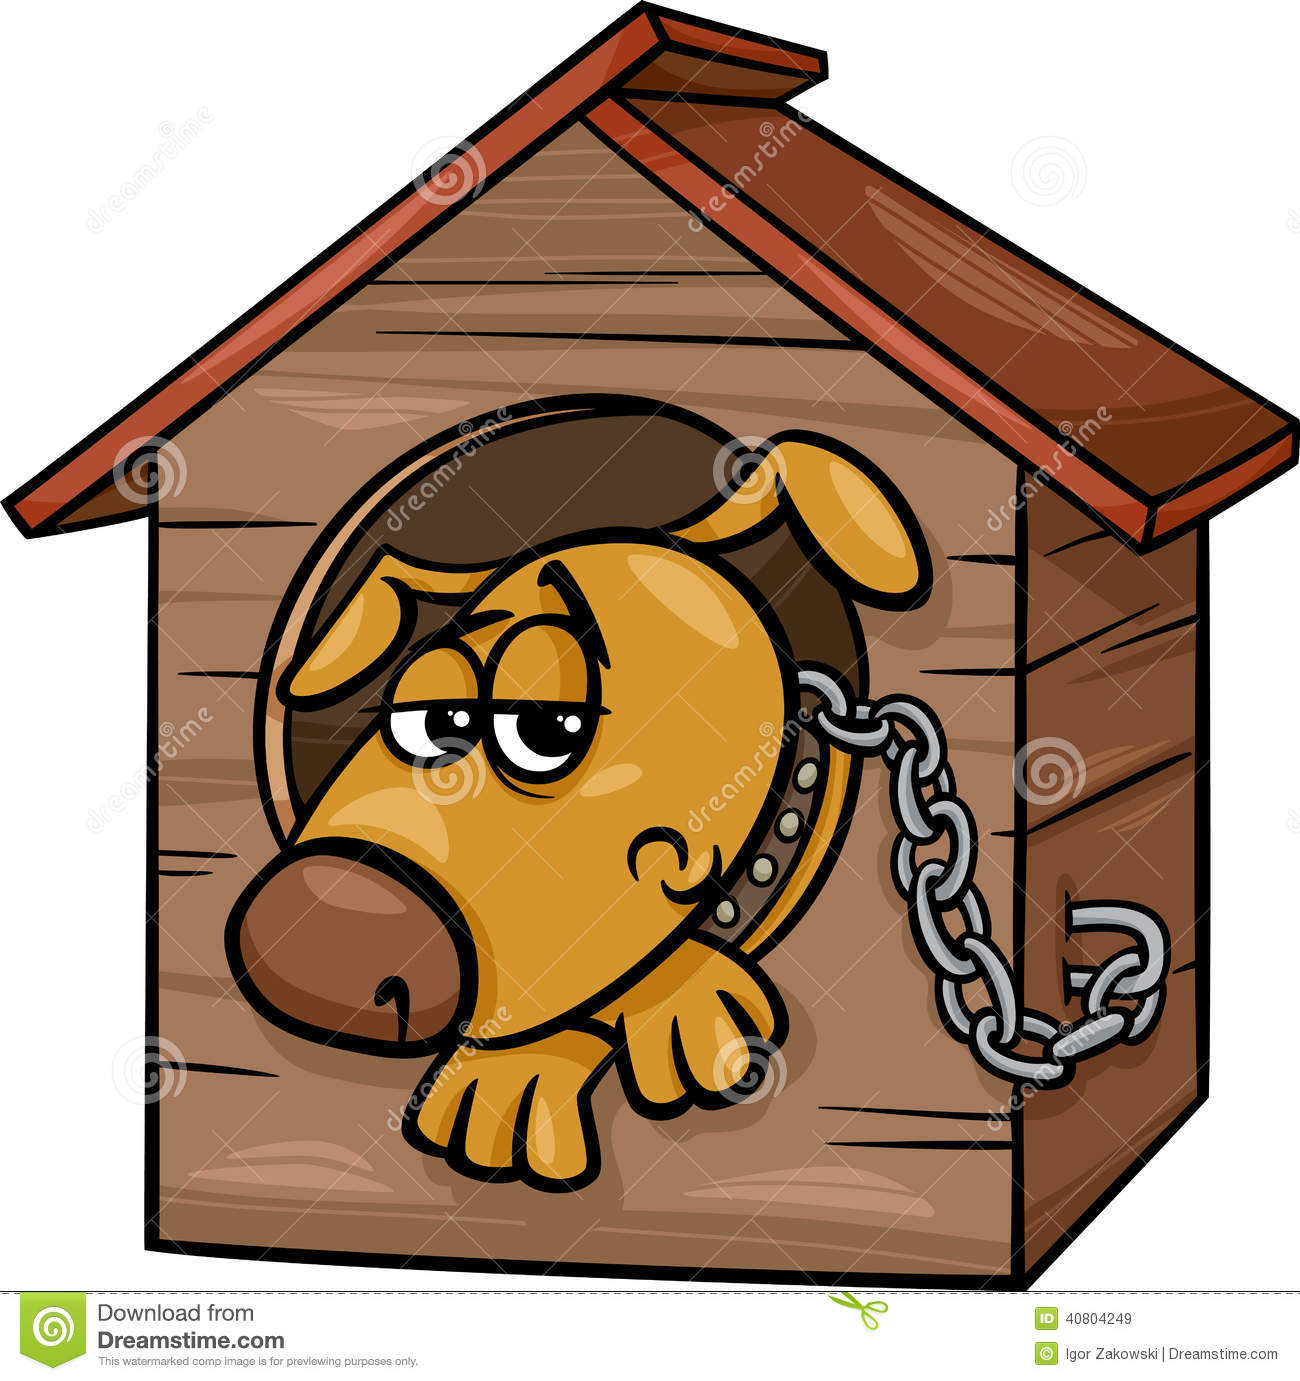 dog in doghouse clipart - photo #30